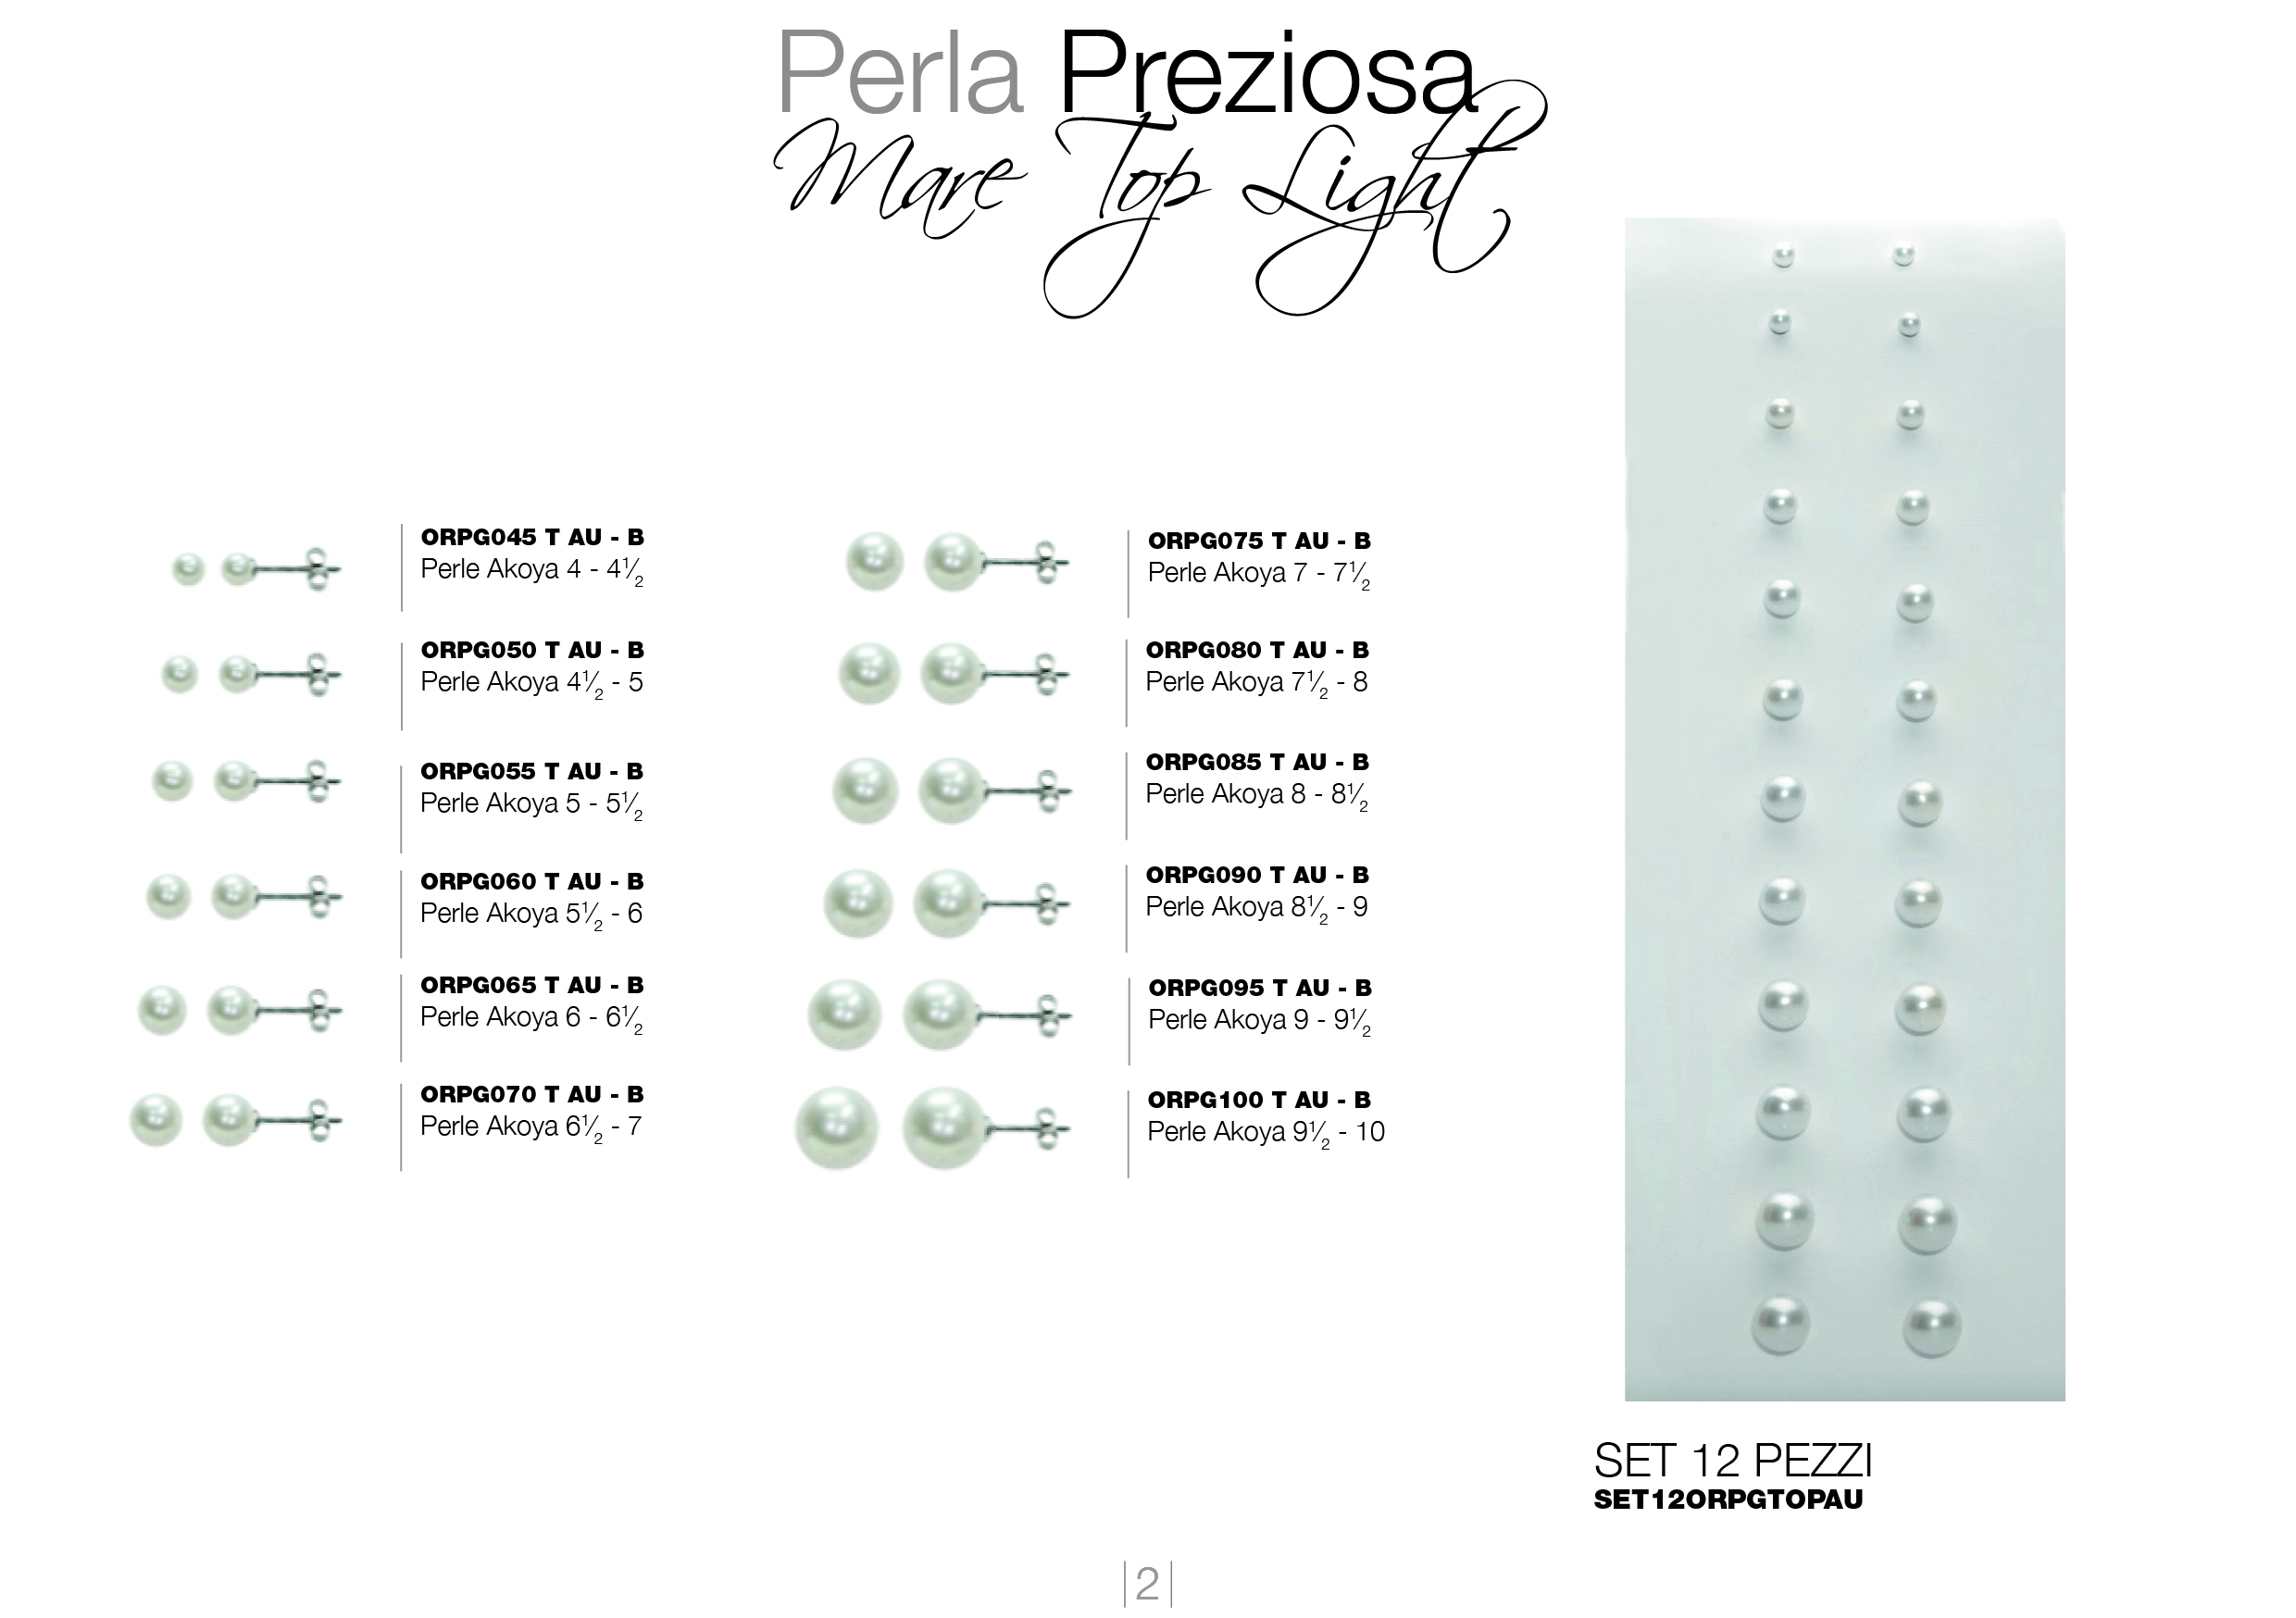 perle preziose top light _V202